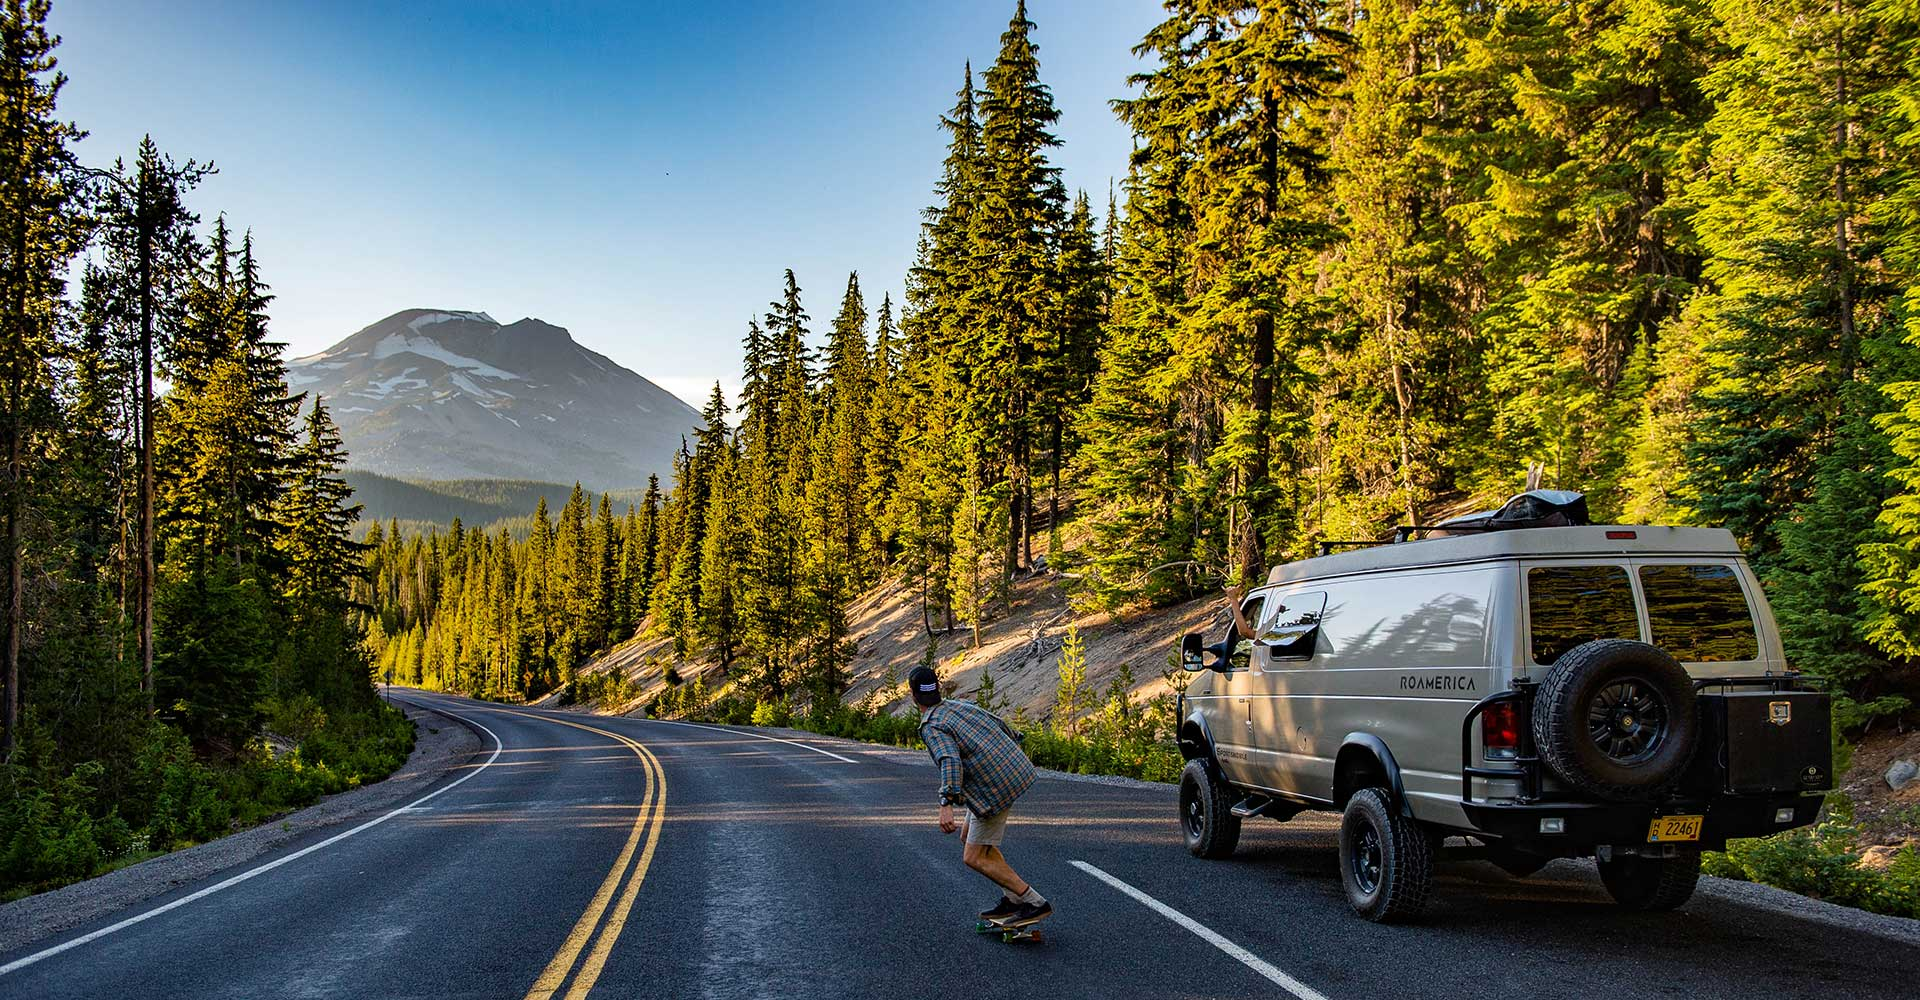 4wd Campervan on an Oregon road trip